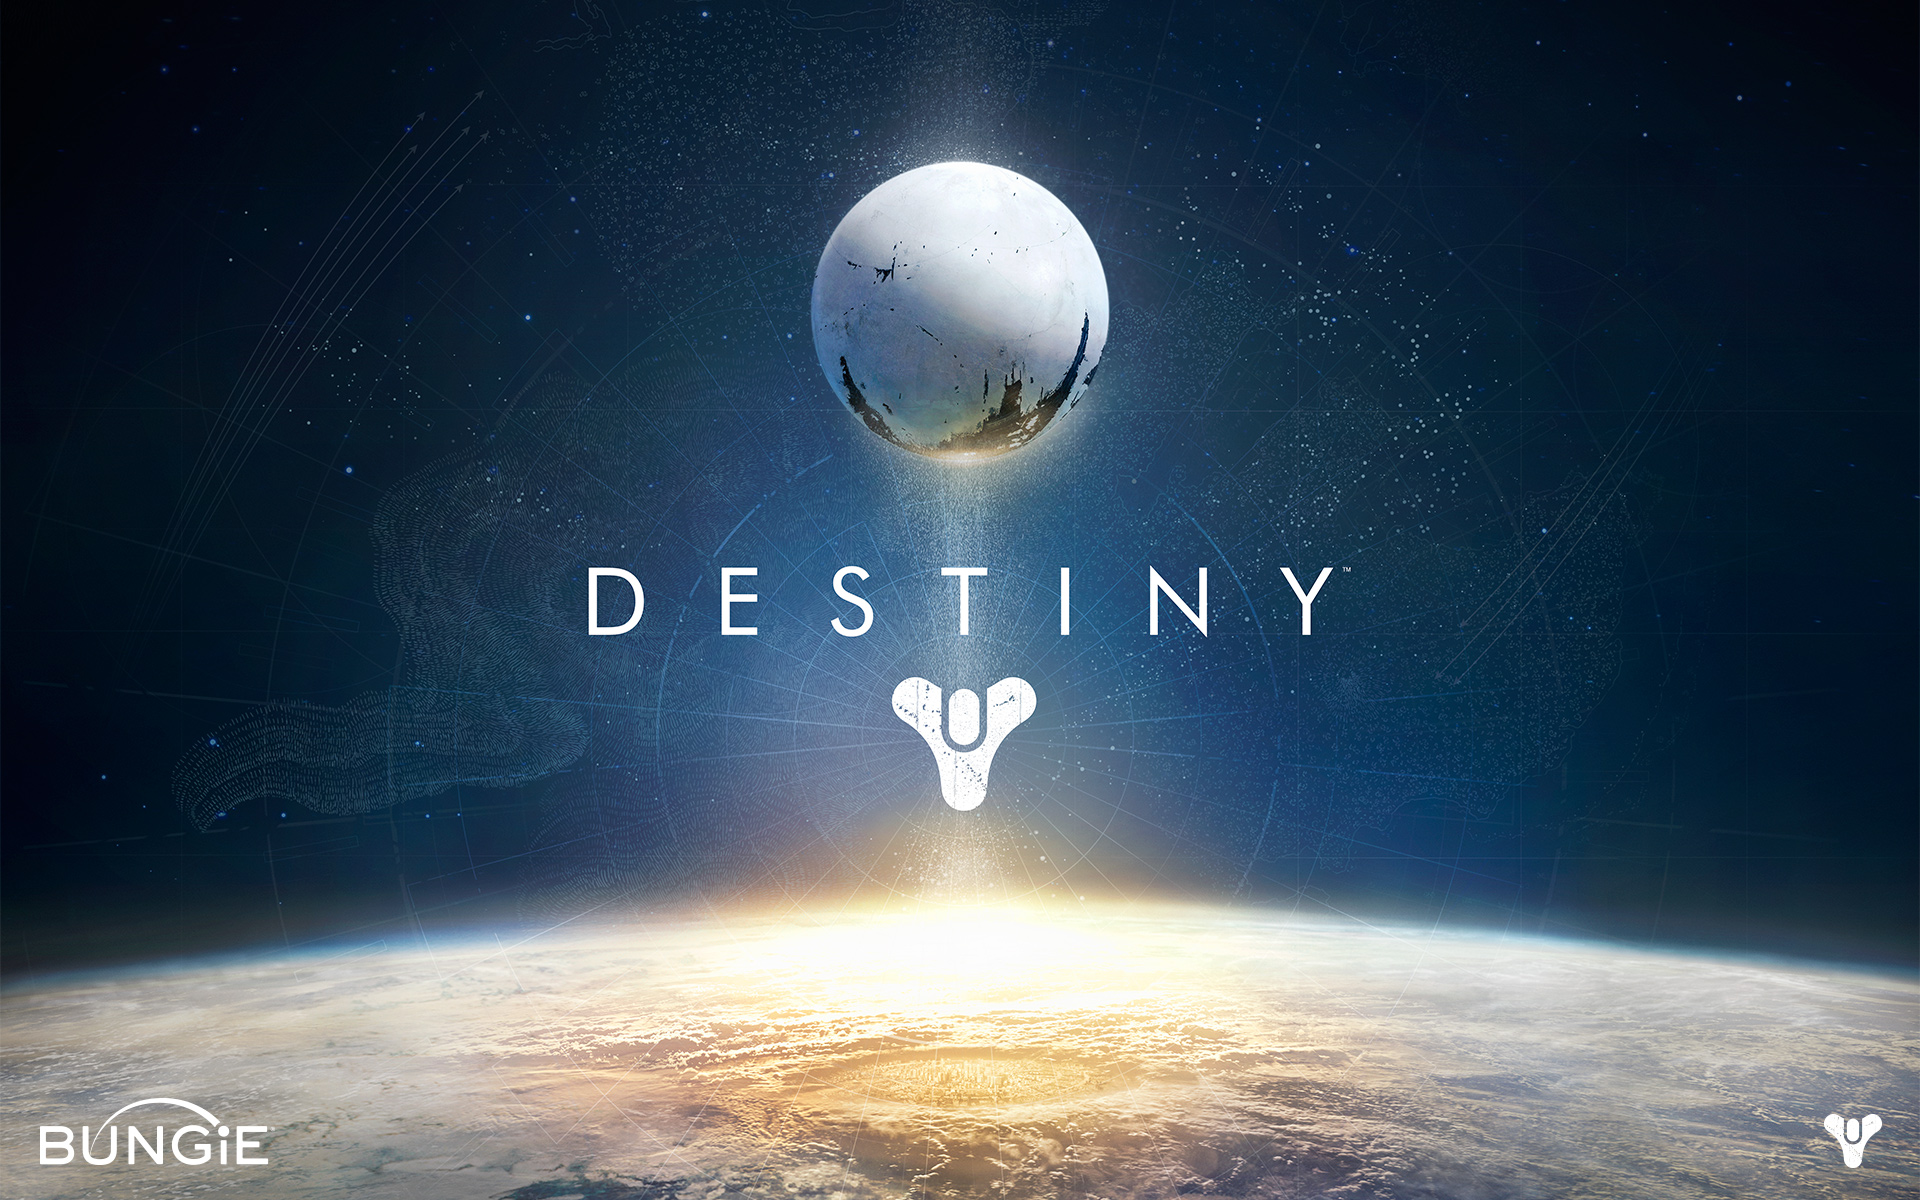 Here's How To Solo Destiny's Nightfall Strike This Week: Kill the